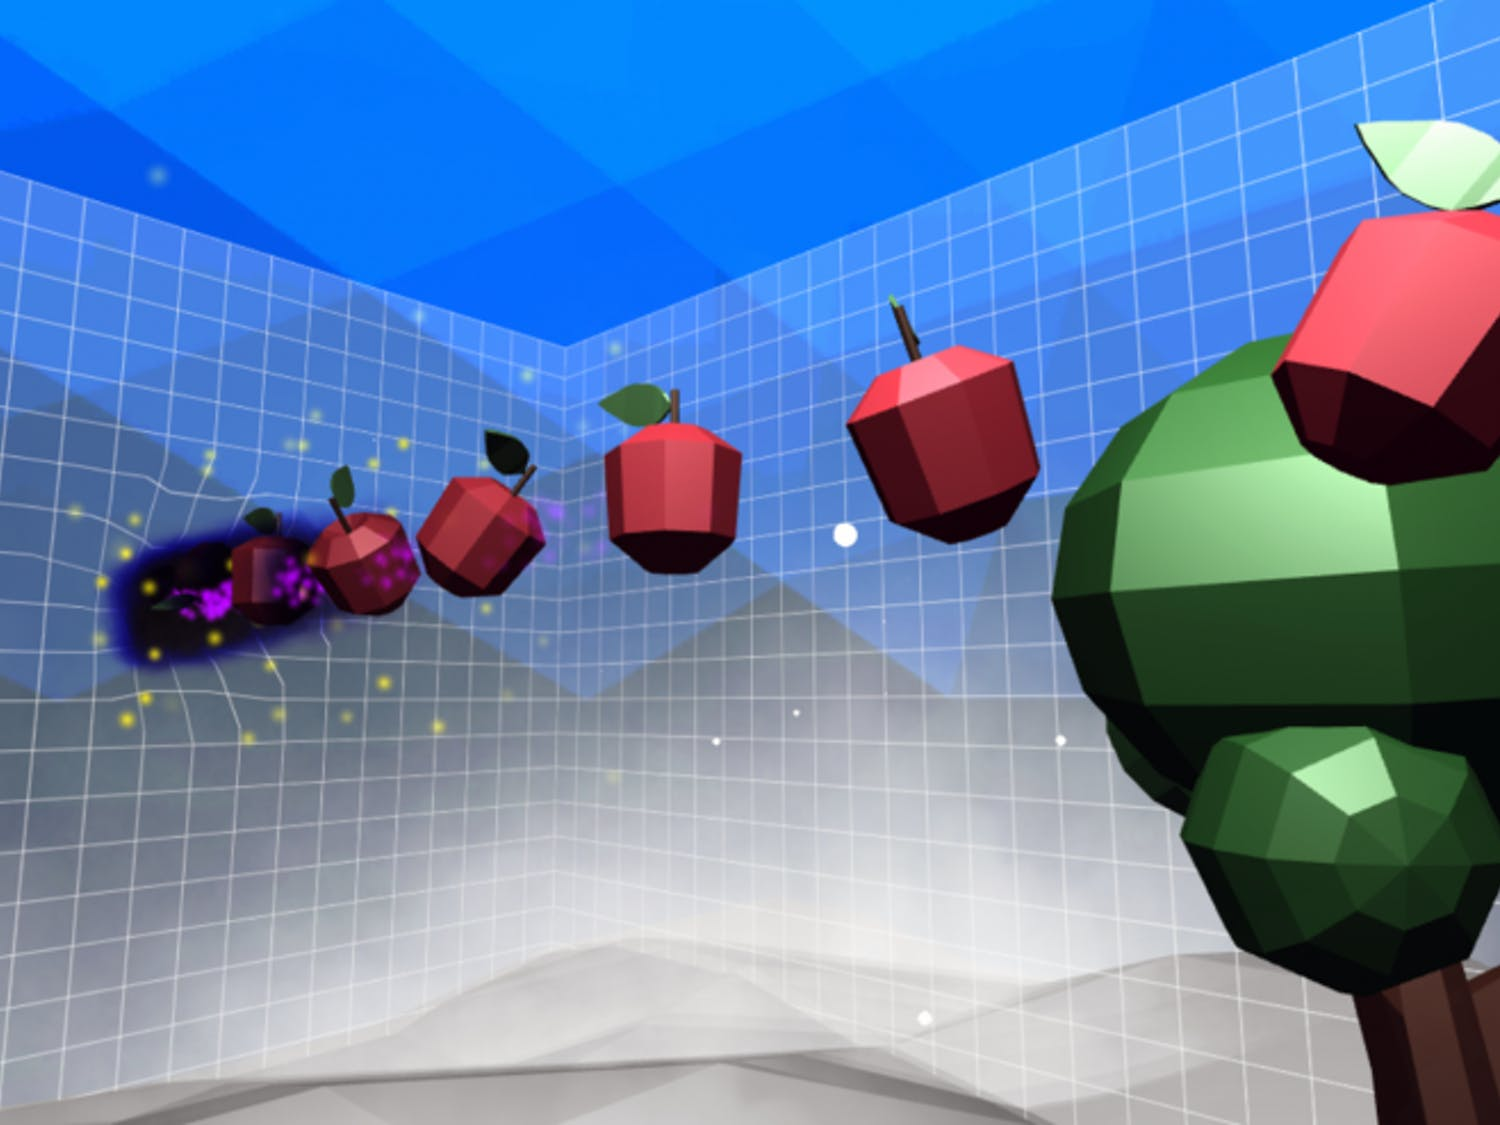 A screenshot of gameplay from Newton's Dream